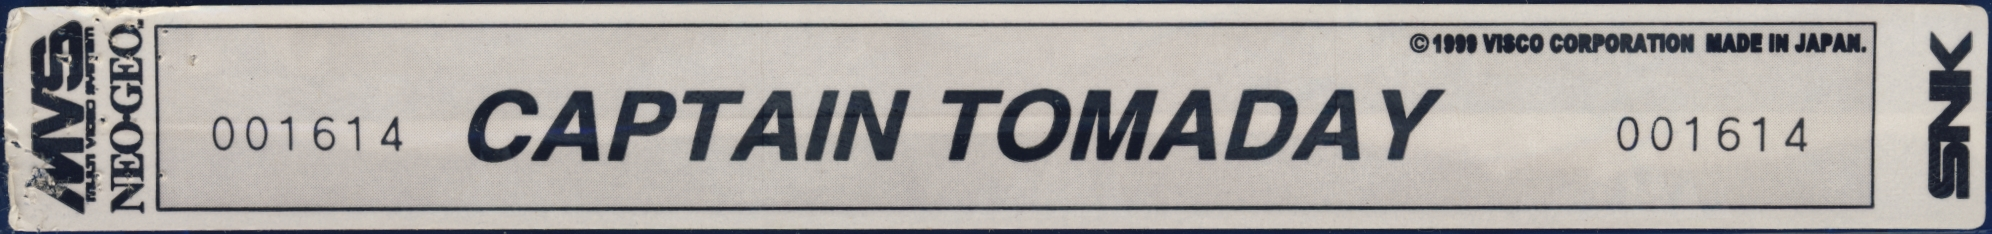 Captain tomaday us label.jpg